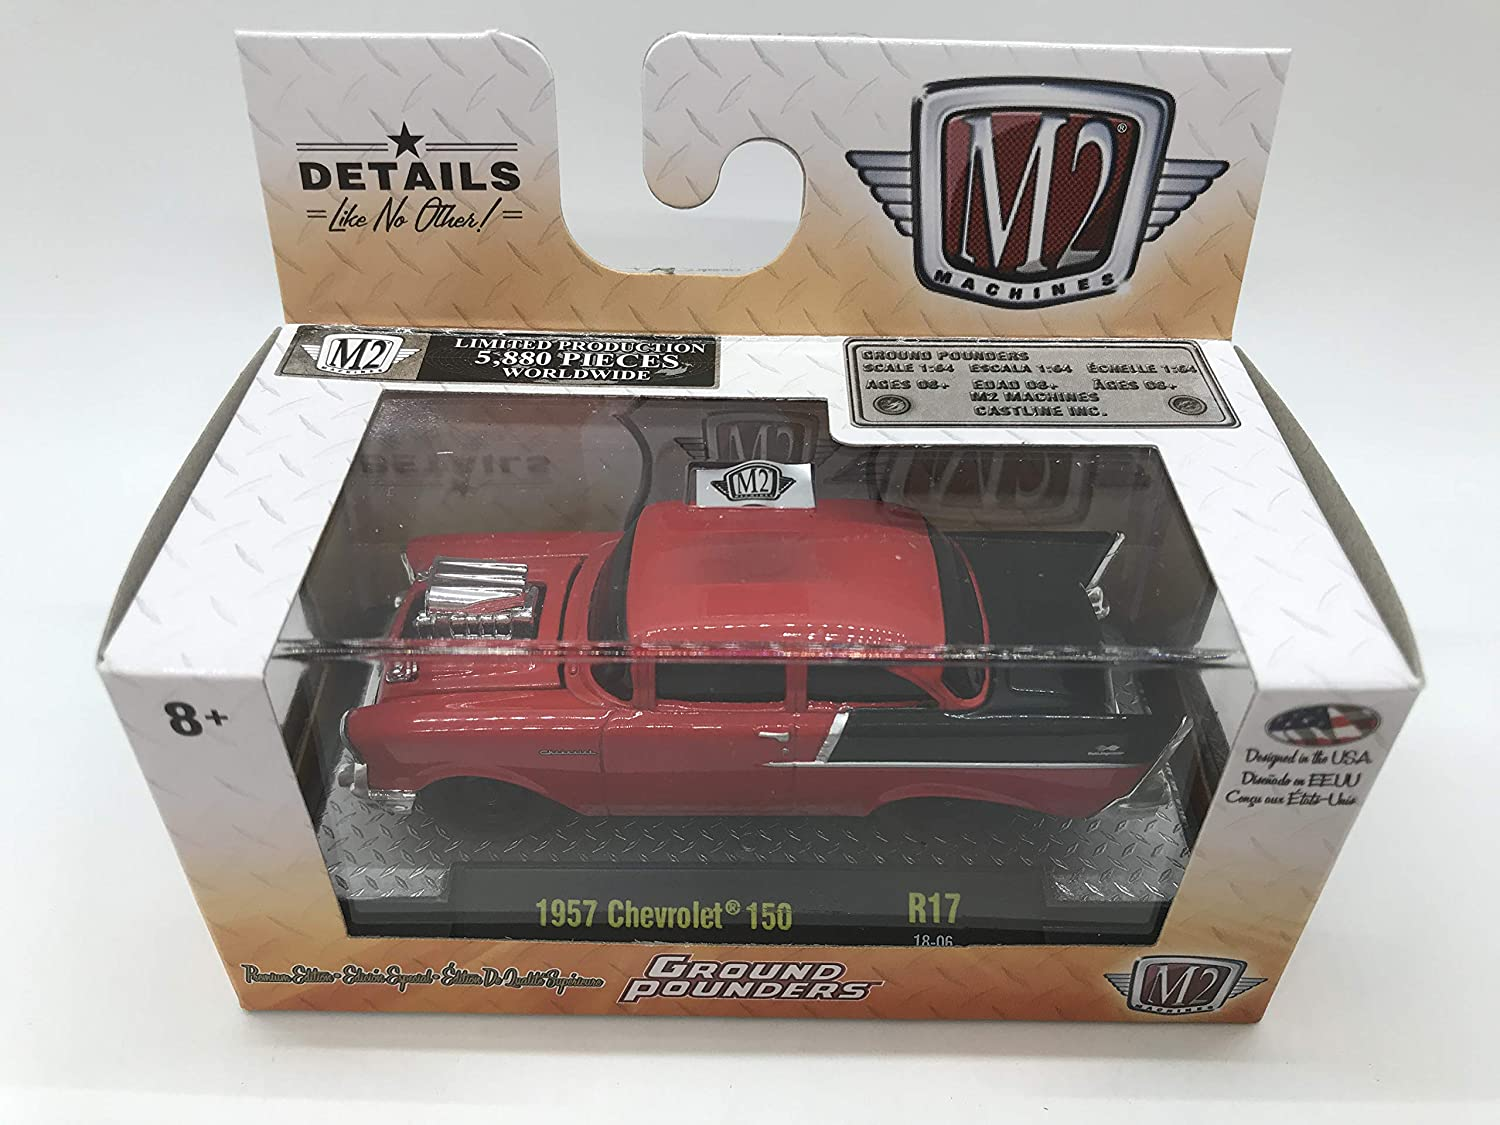 M2 Machines by M2 Collectible Ground Pounders 1957 Chevy 150 R17 18-06 Red//Black Details Like NO Other 1 of 5880